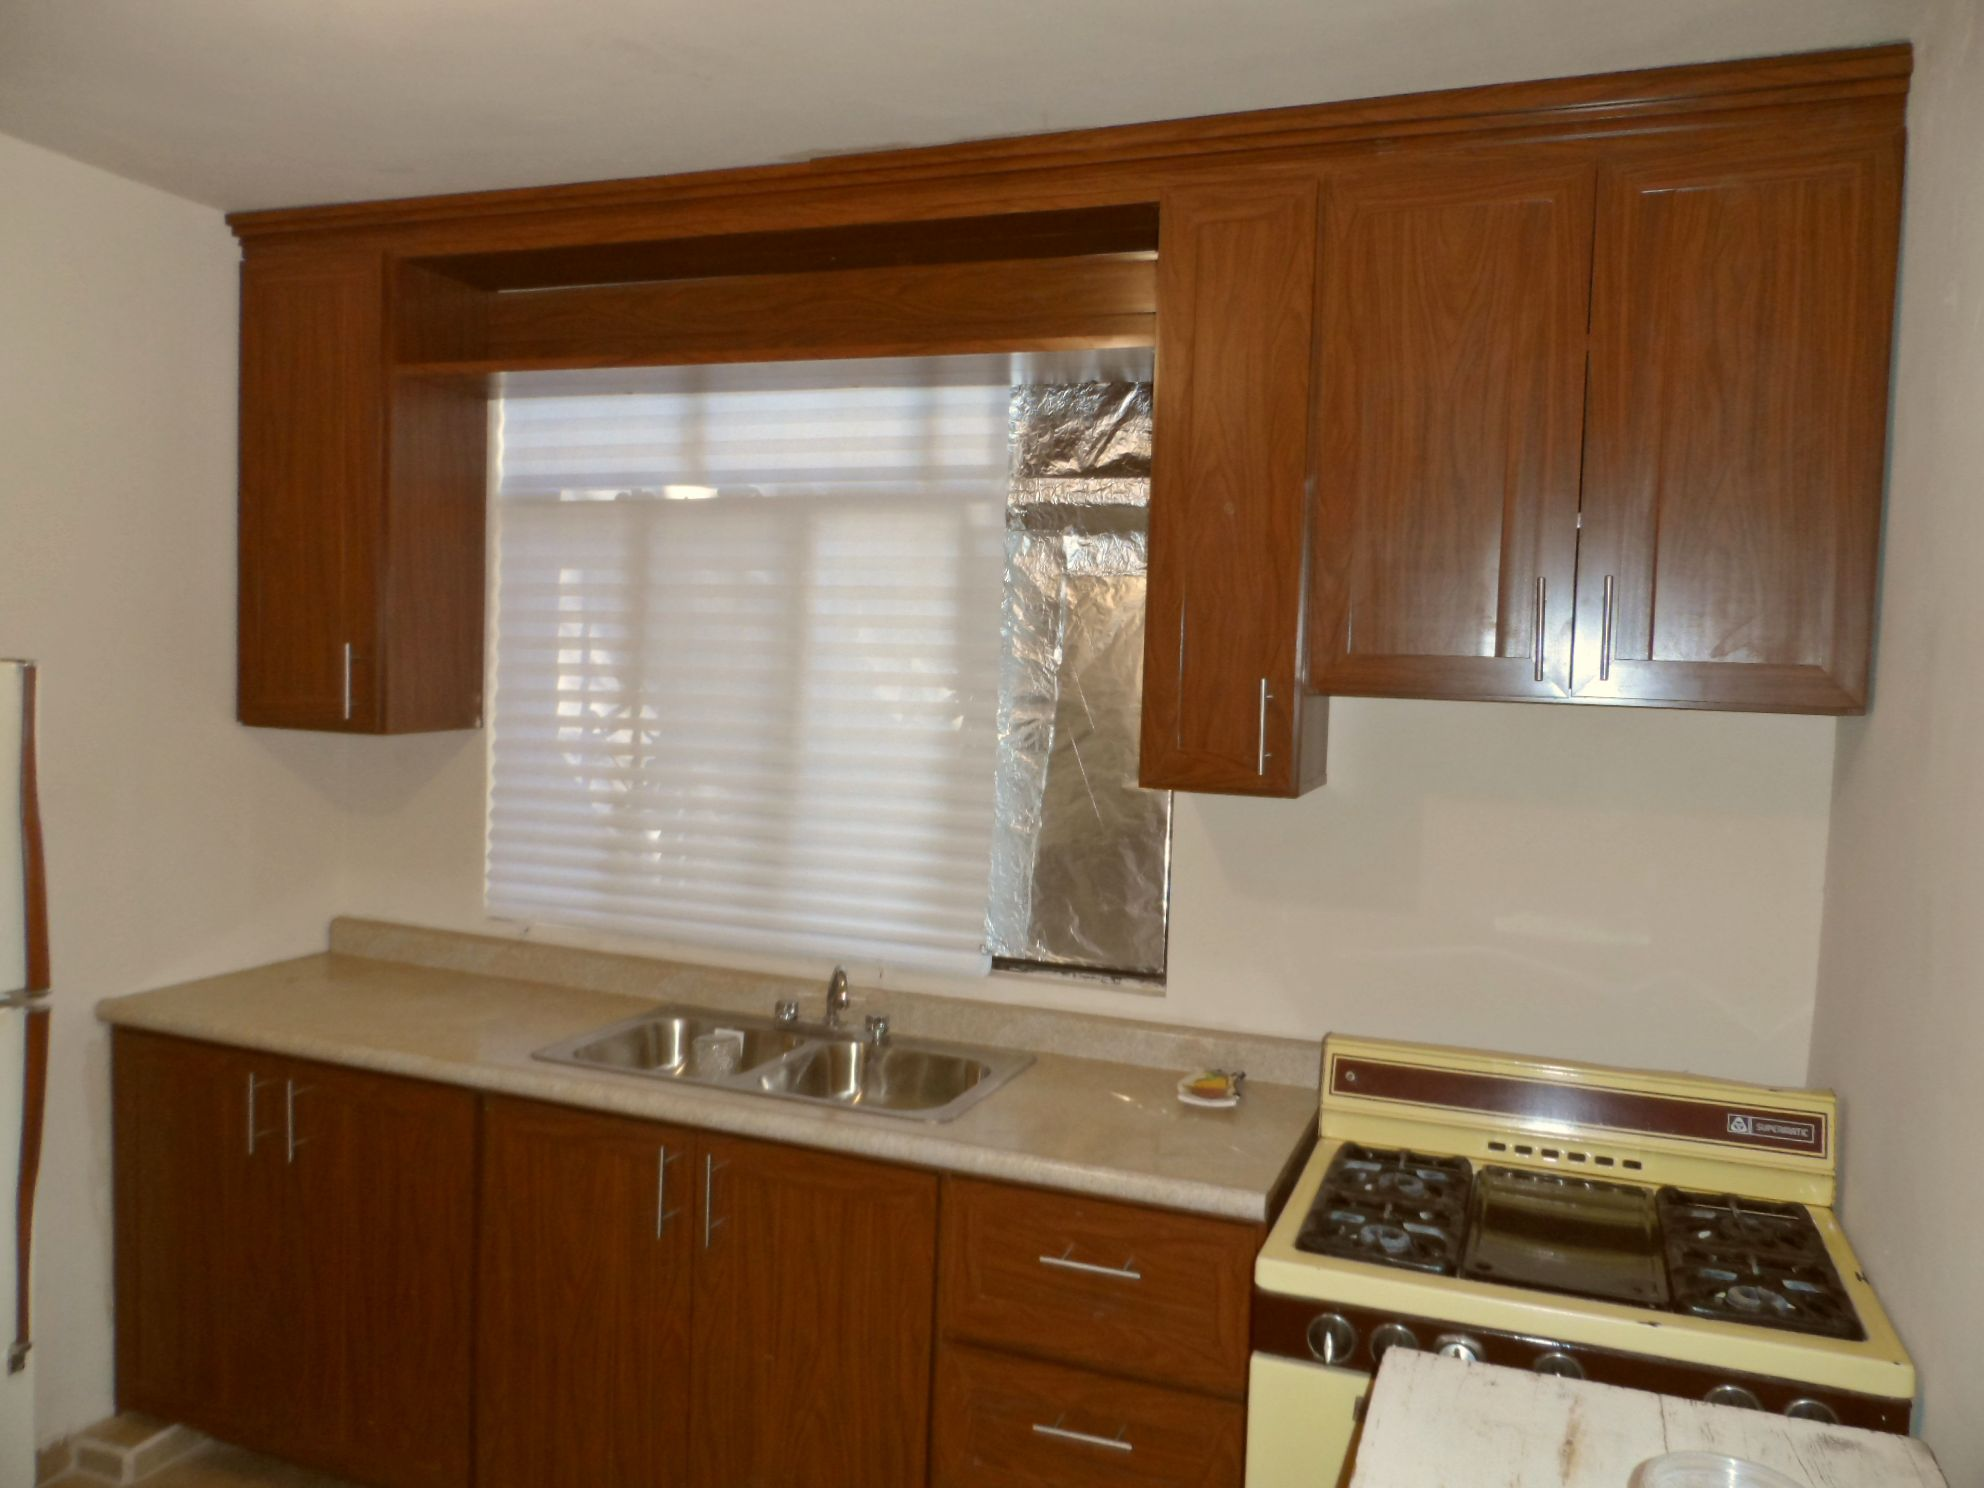 RIGID PLASTIC KITCHEN CABINETS